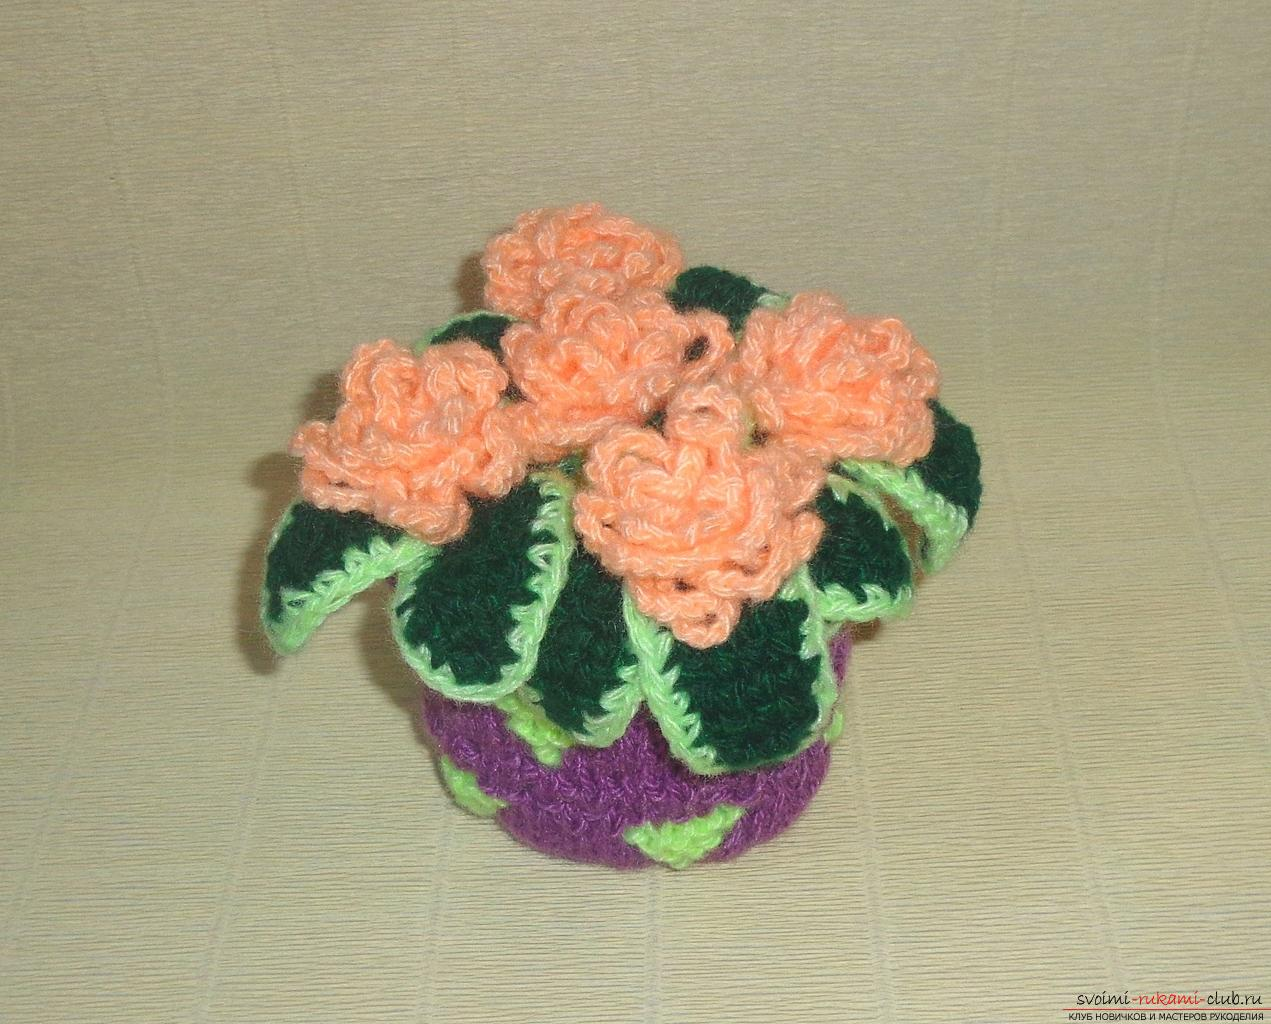 This master class of crochet crochet contains a rose scheme and a description of knitting .. Photo # 36